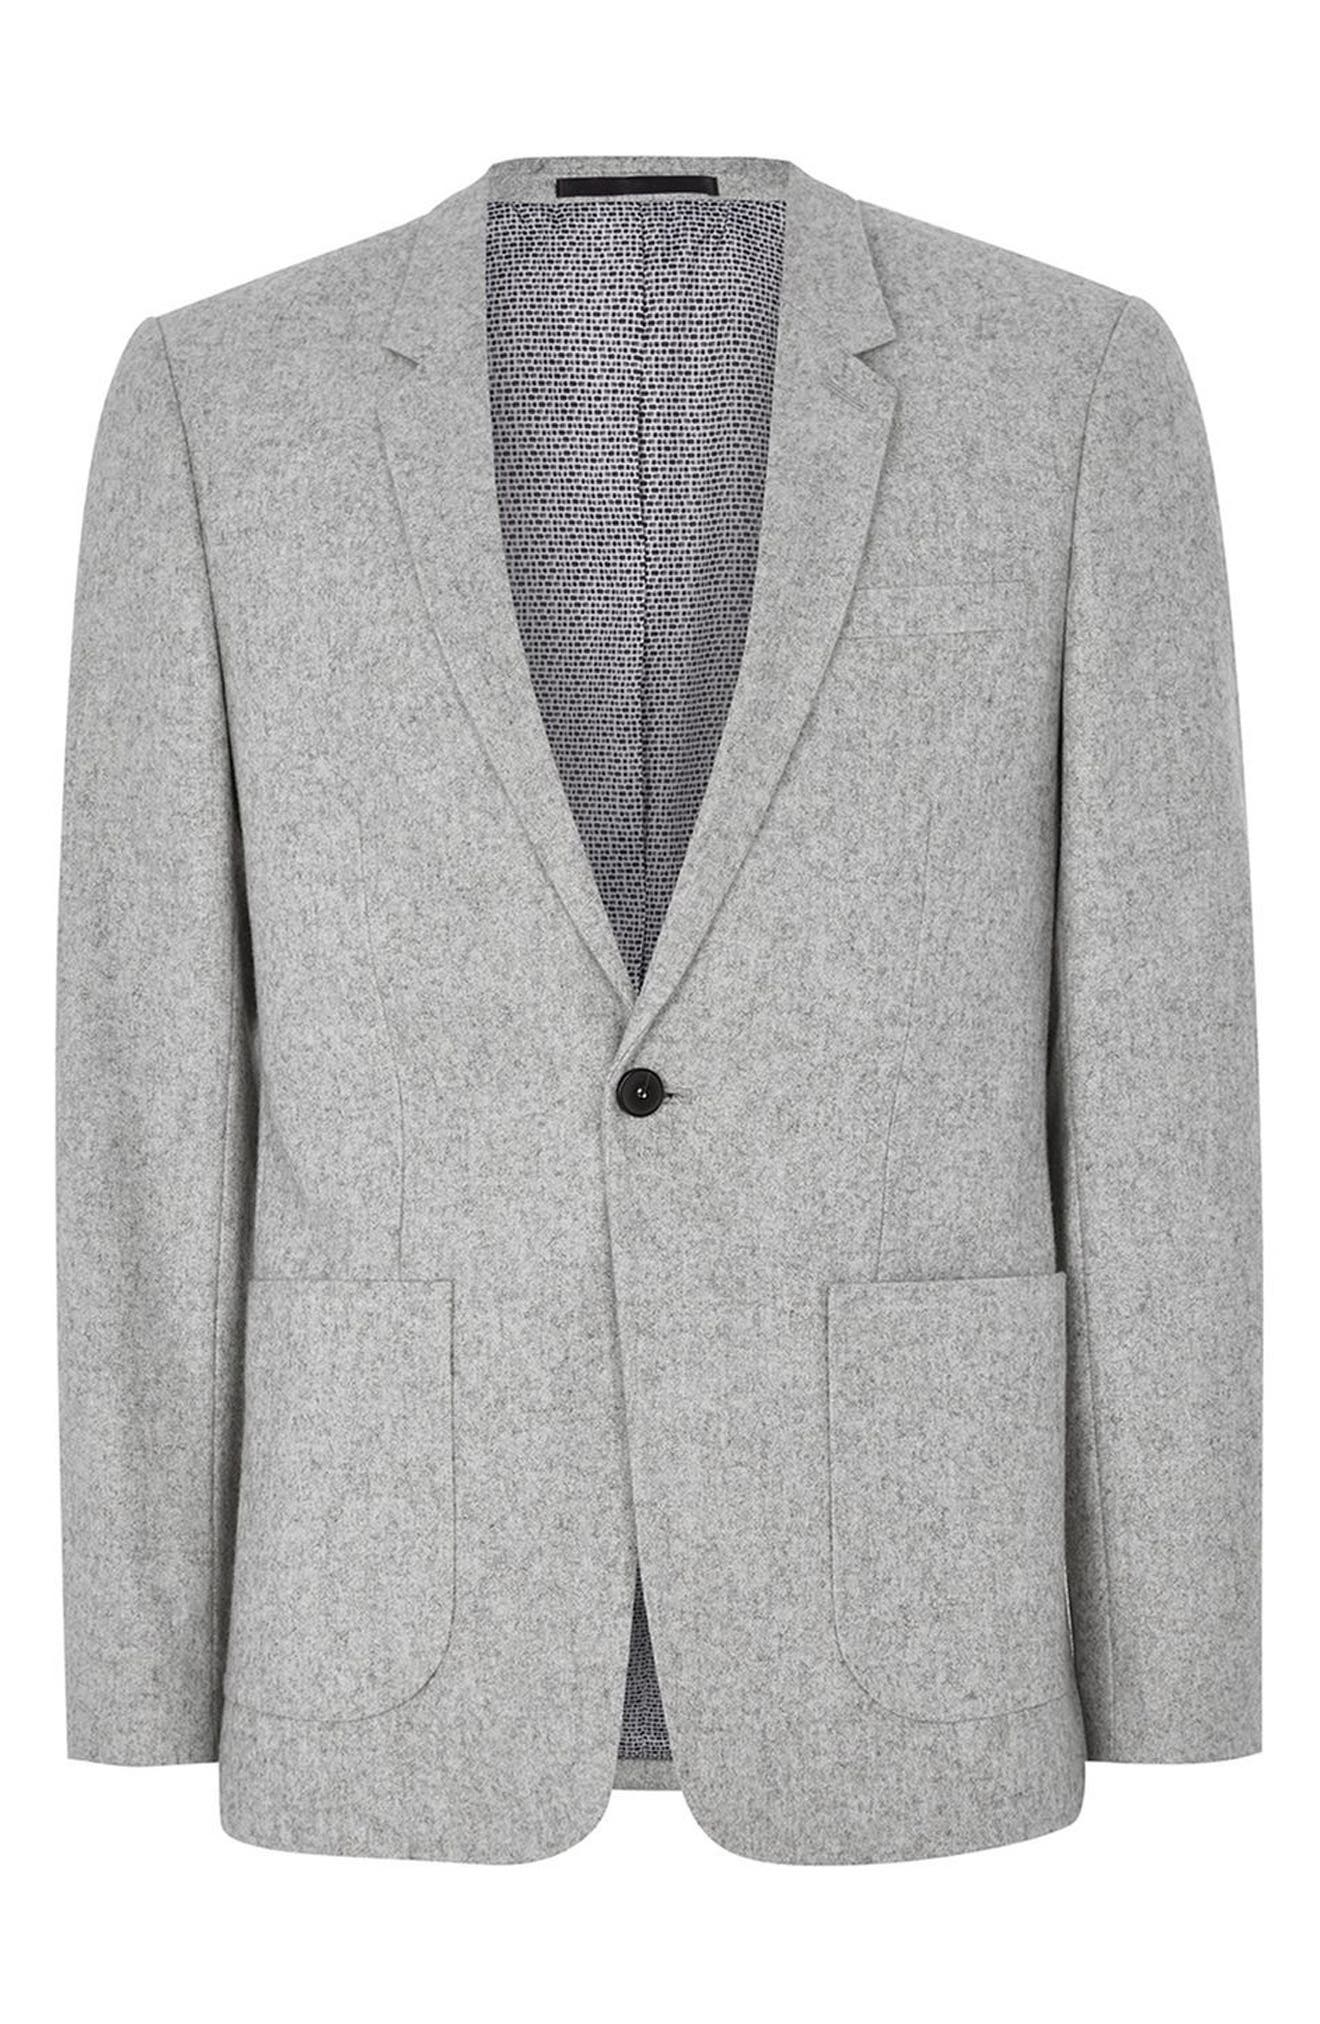 Murdoch One-Button Jacket,                             Alternate thumbnail 4, color,                             Light Grey